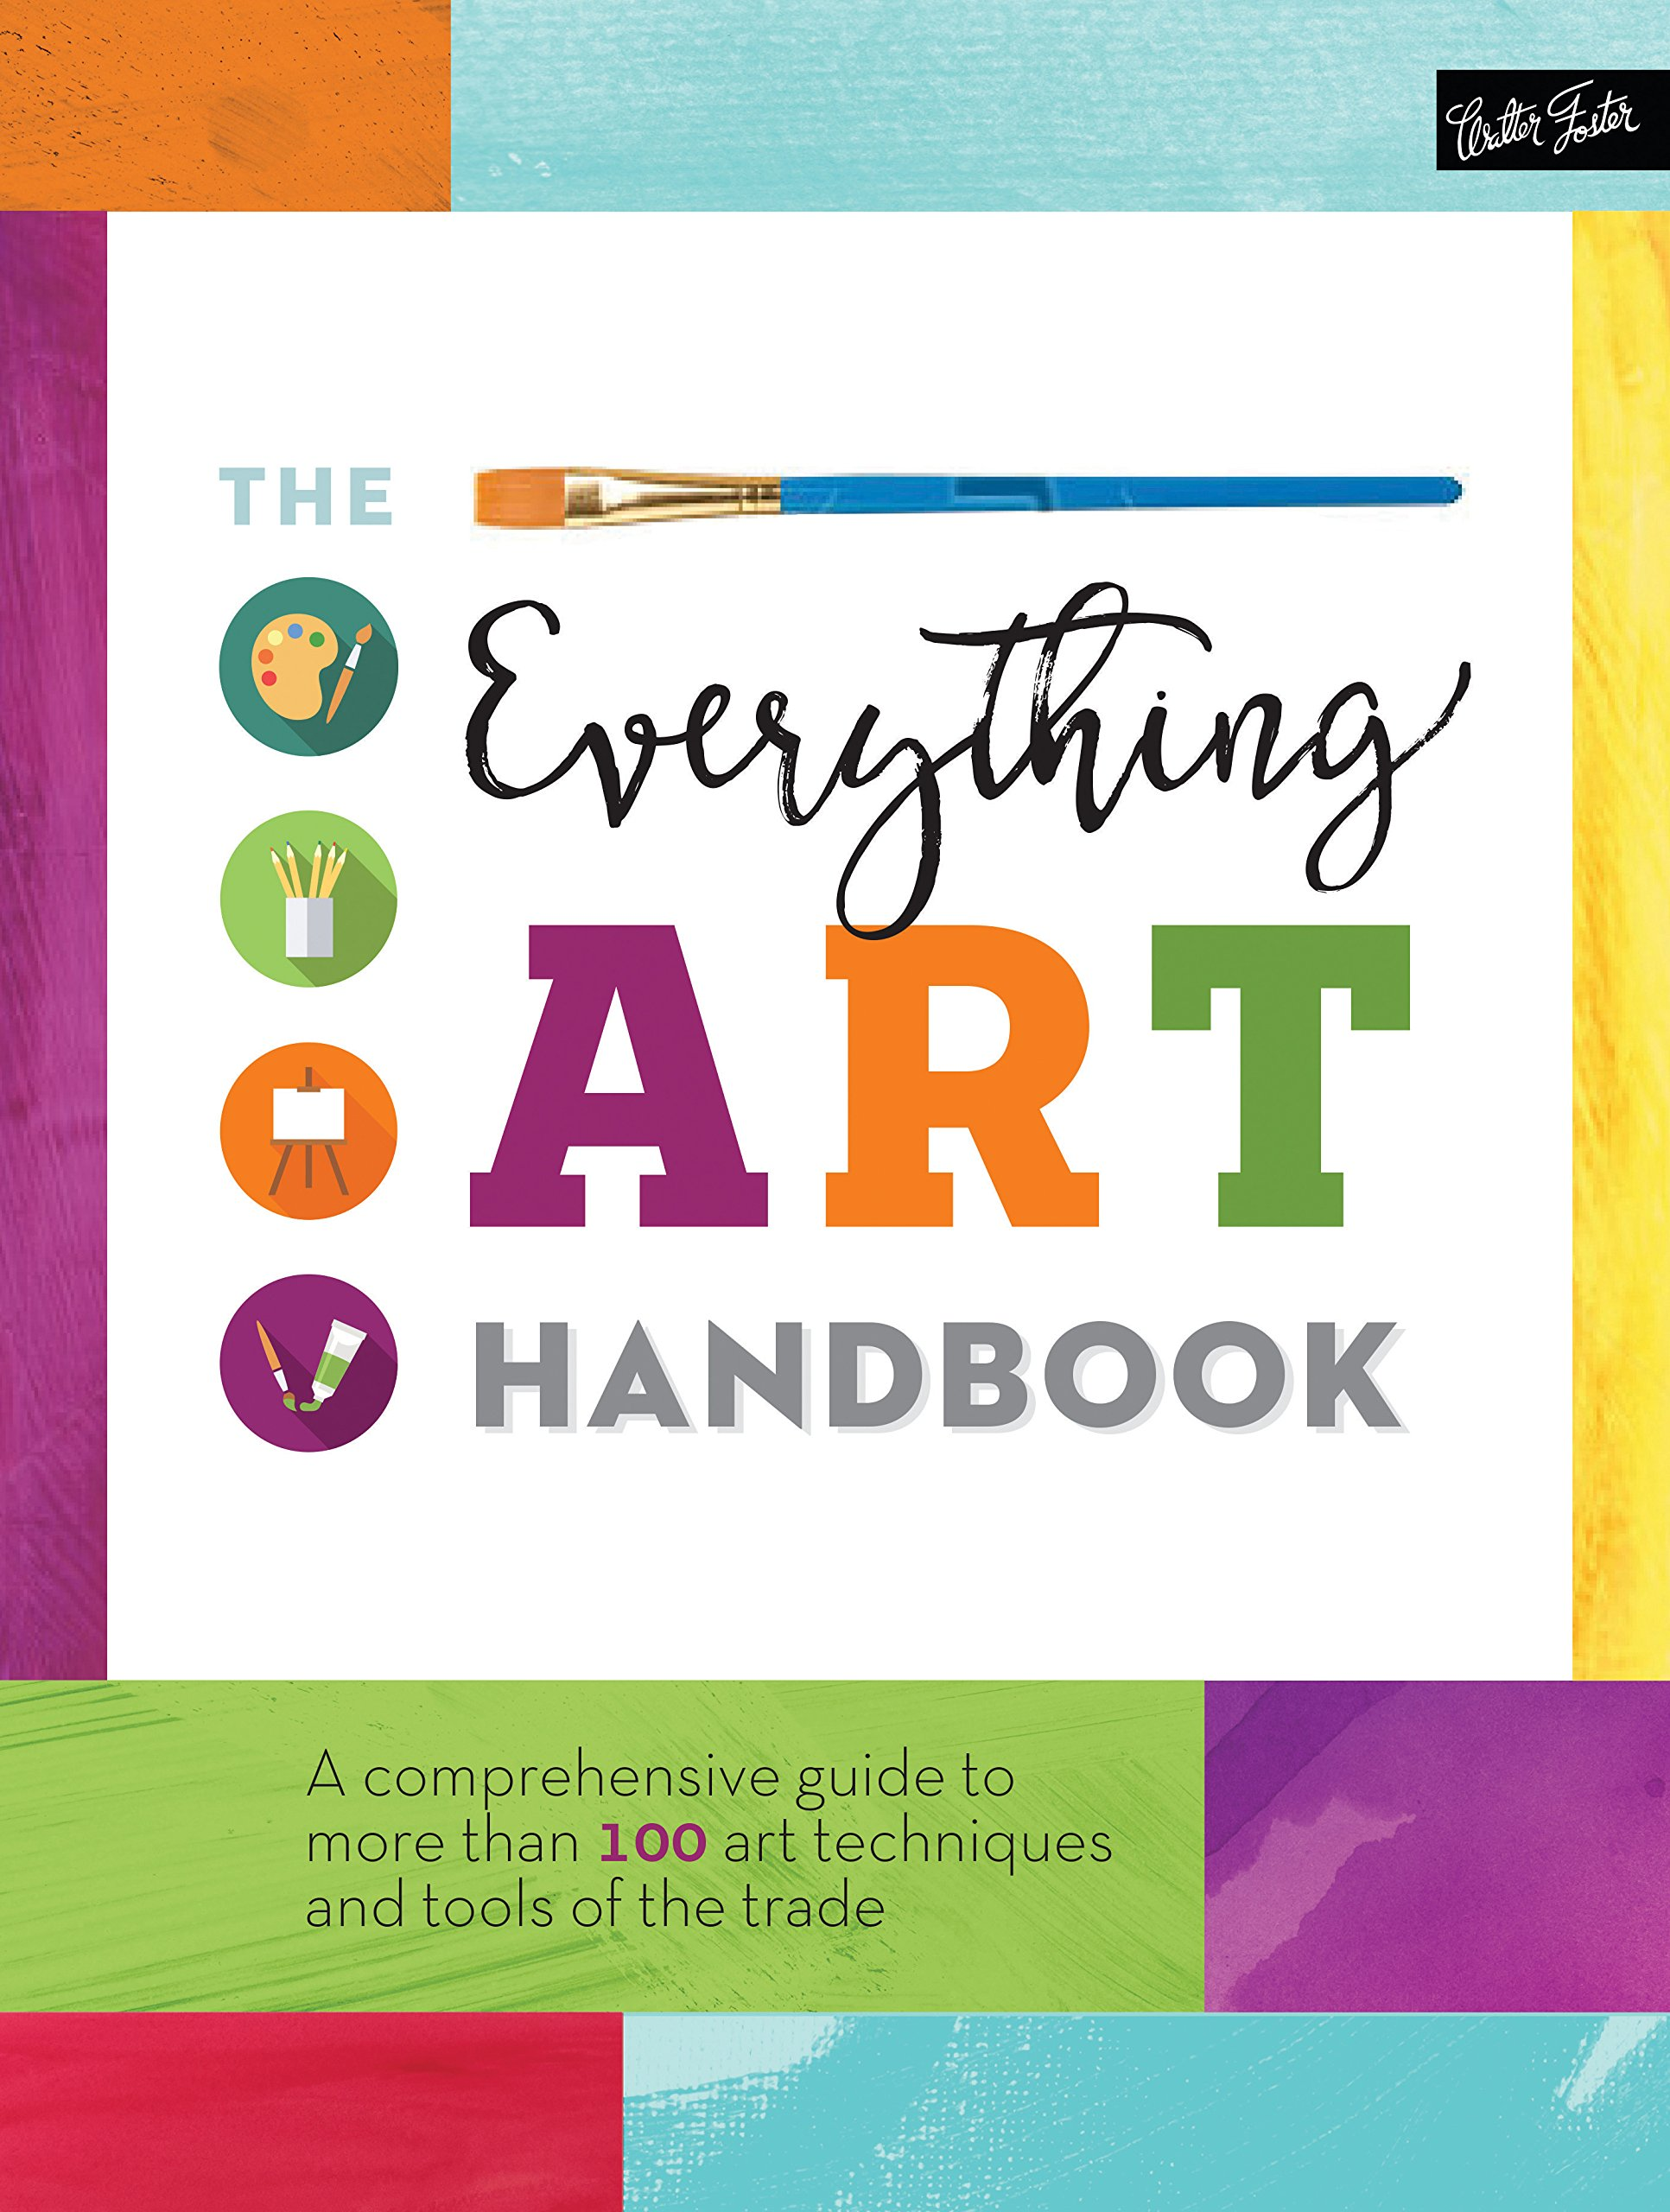 the-everything-art-handbook-a-comprehensive-guide-to-more-than-100-art-techniques-and-tools-of-the-trade-the-complete-book-of